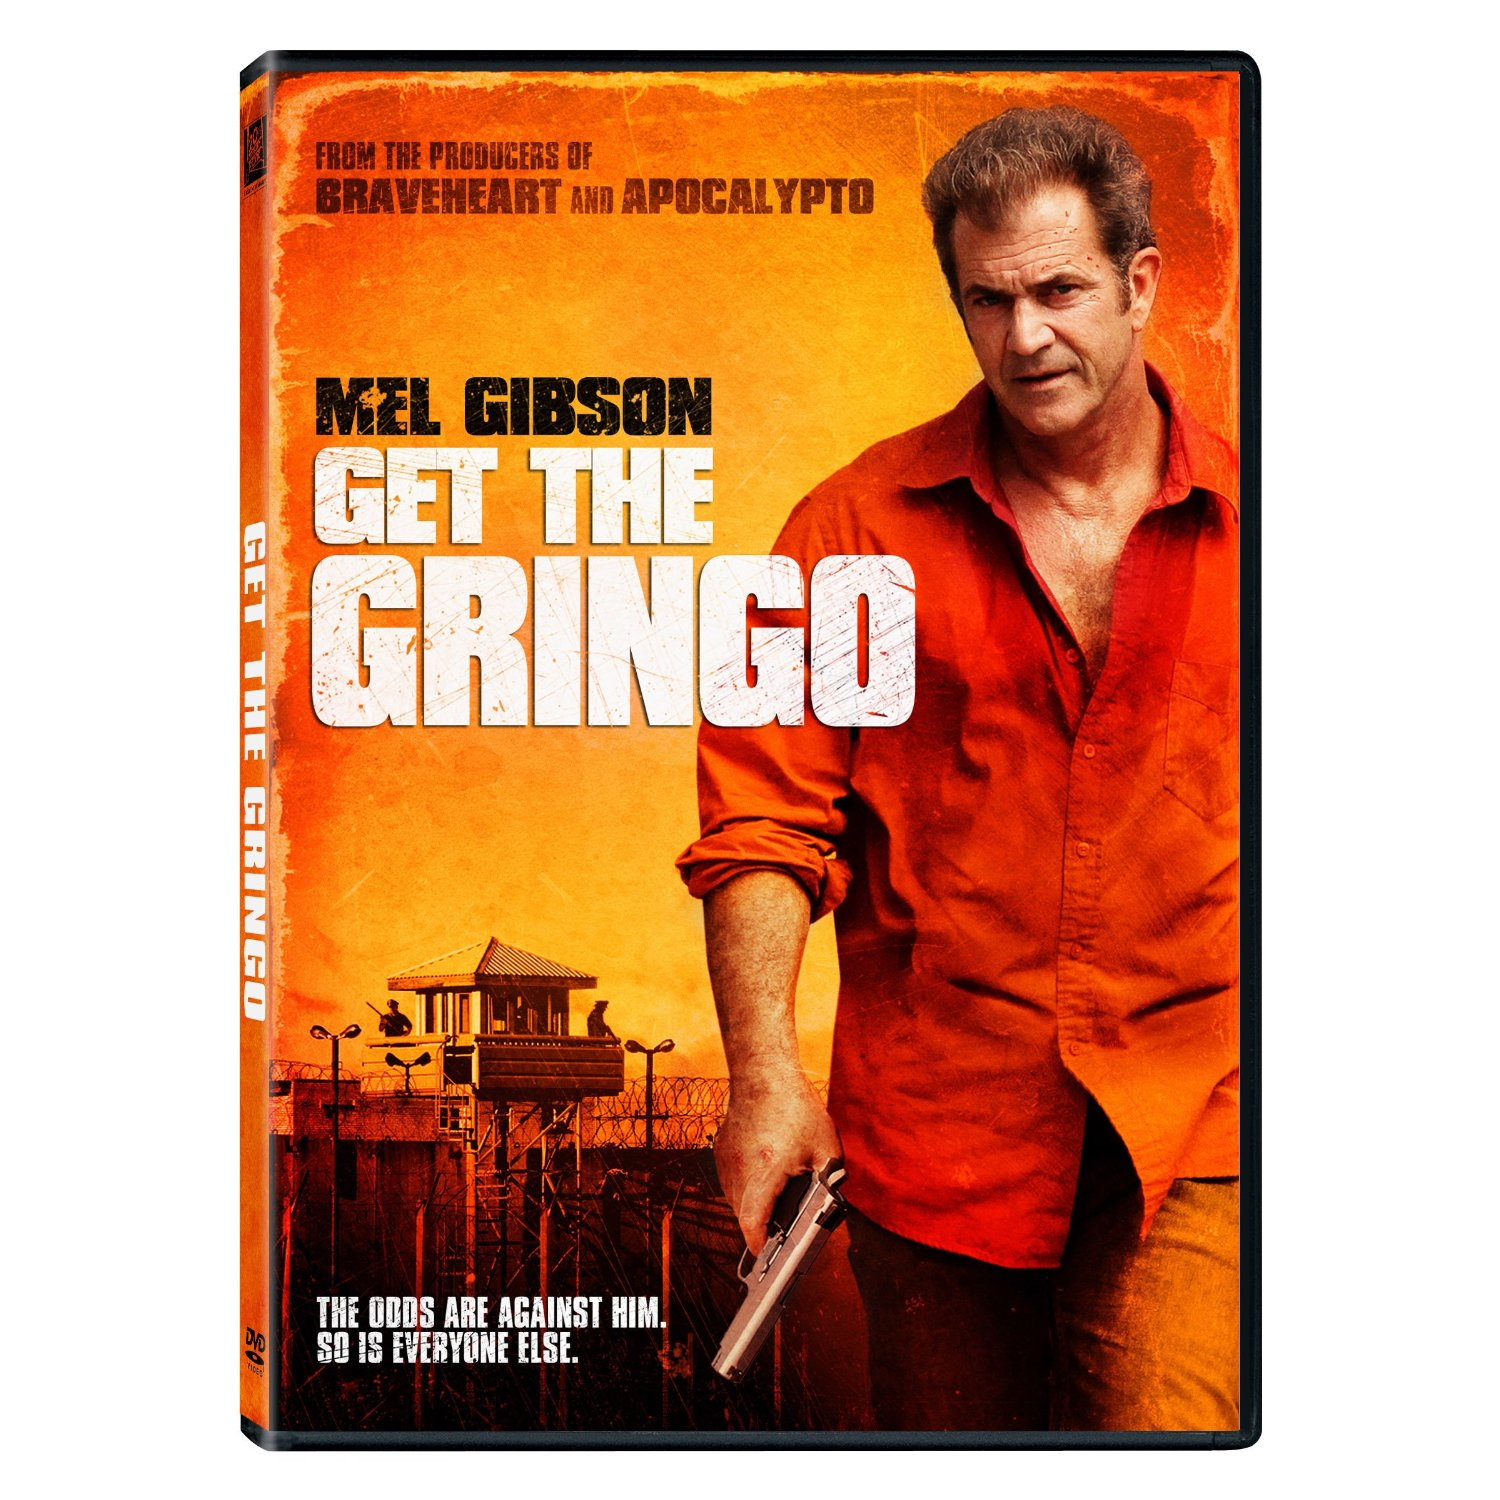 Digital Views: GET THE GRINGO: GIBSON IS BACK